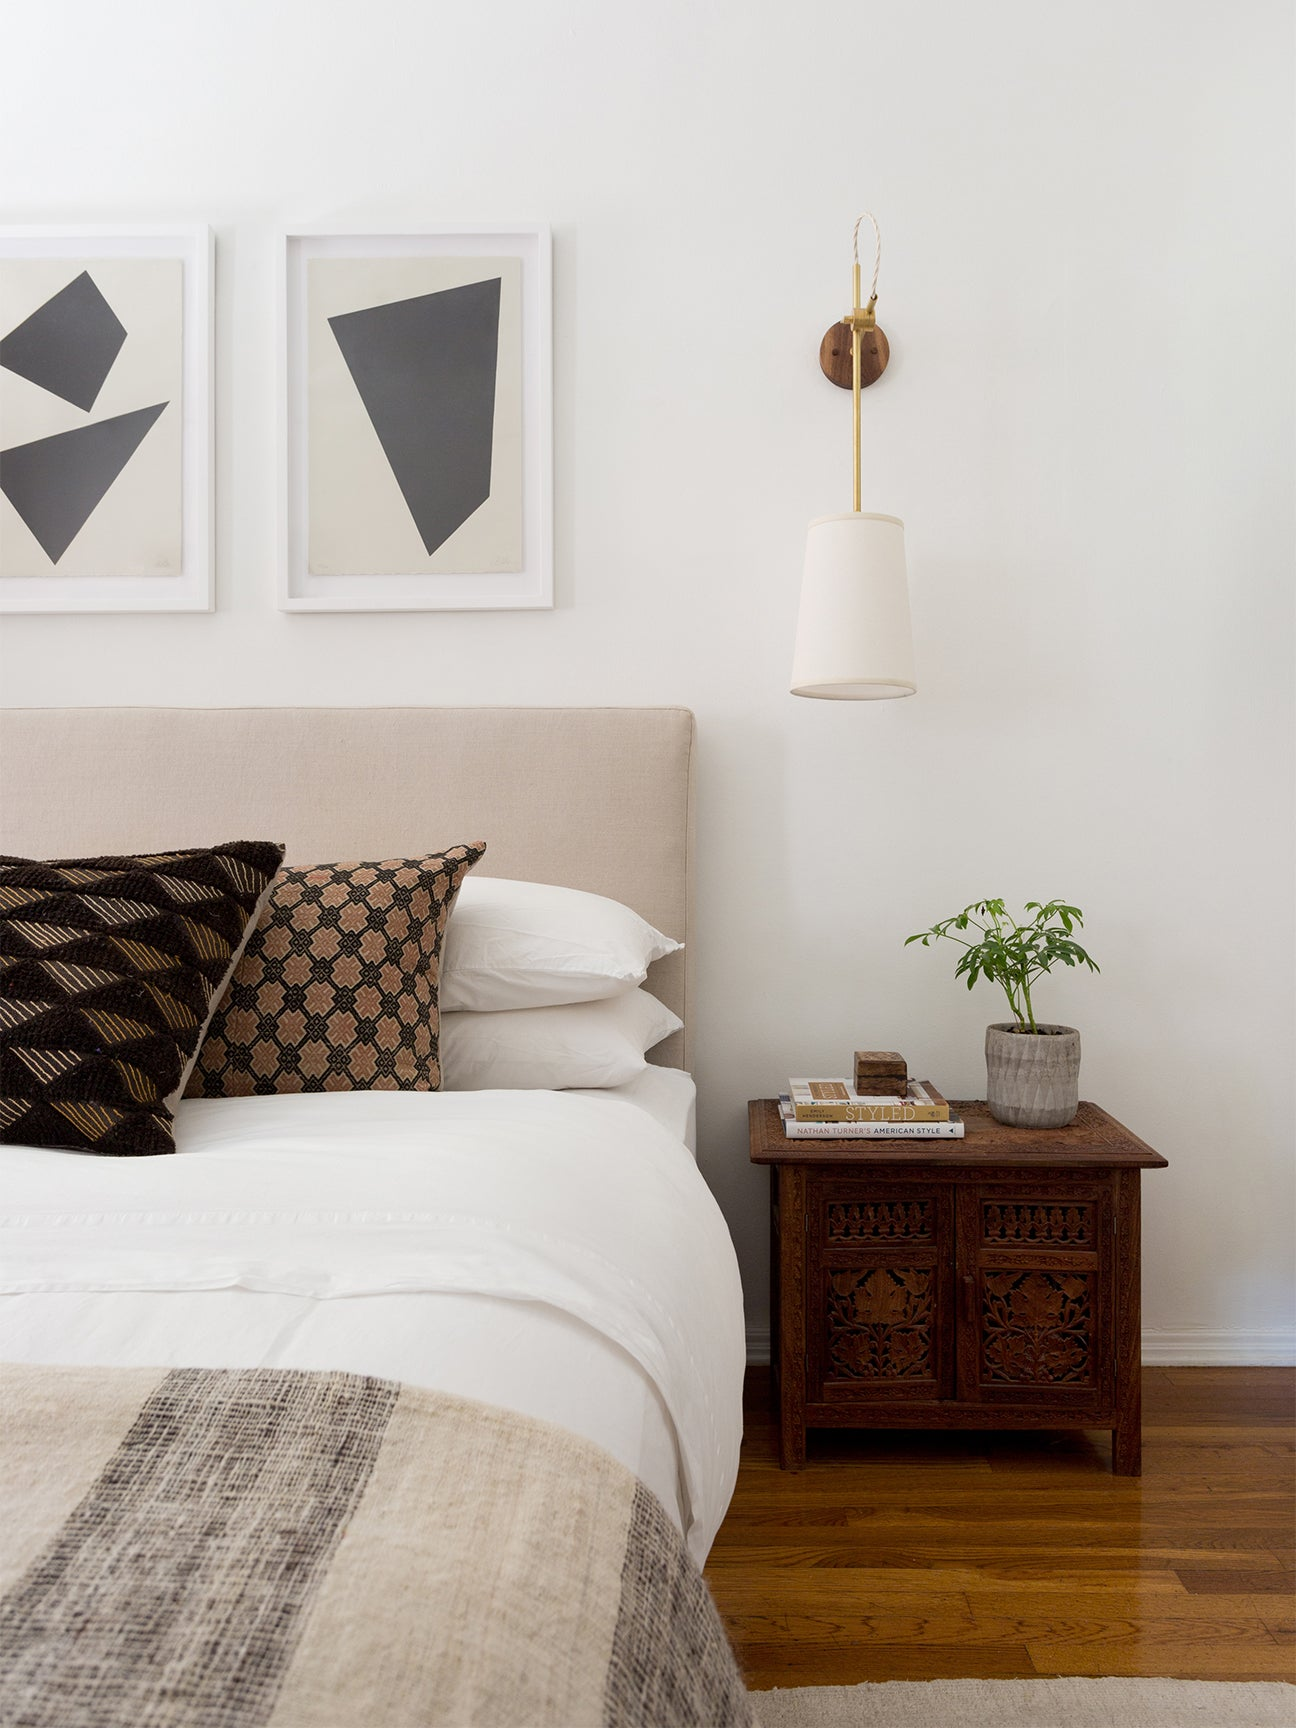 Bed with neutral blanket and headboard